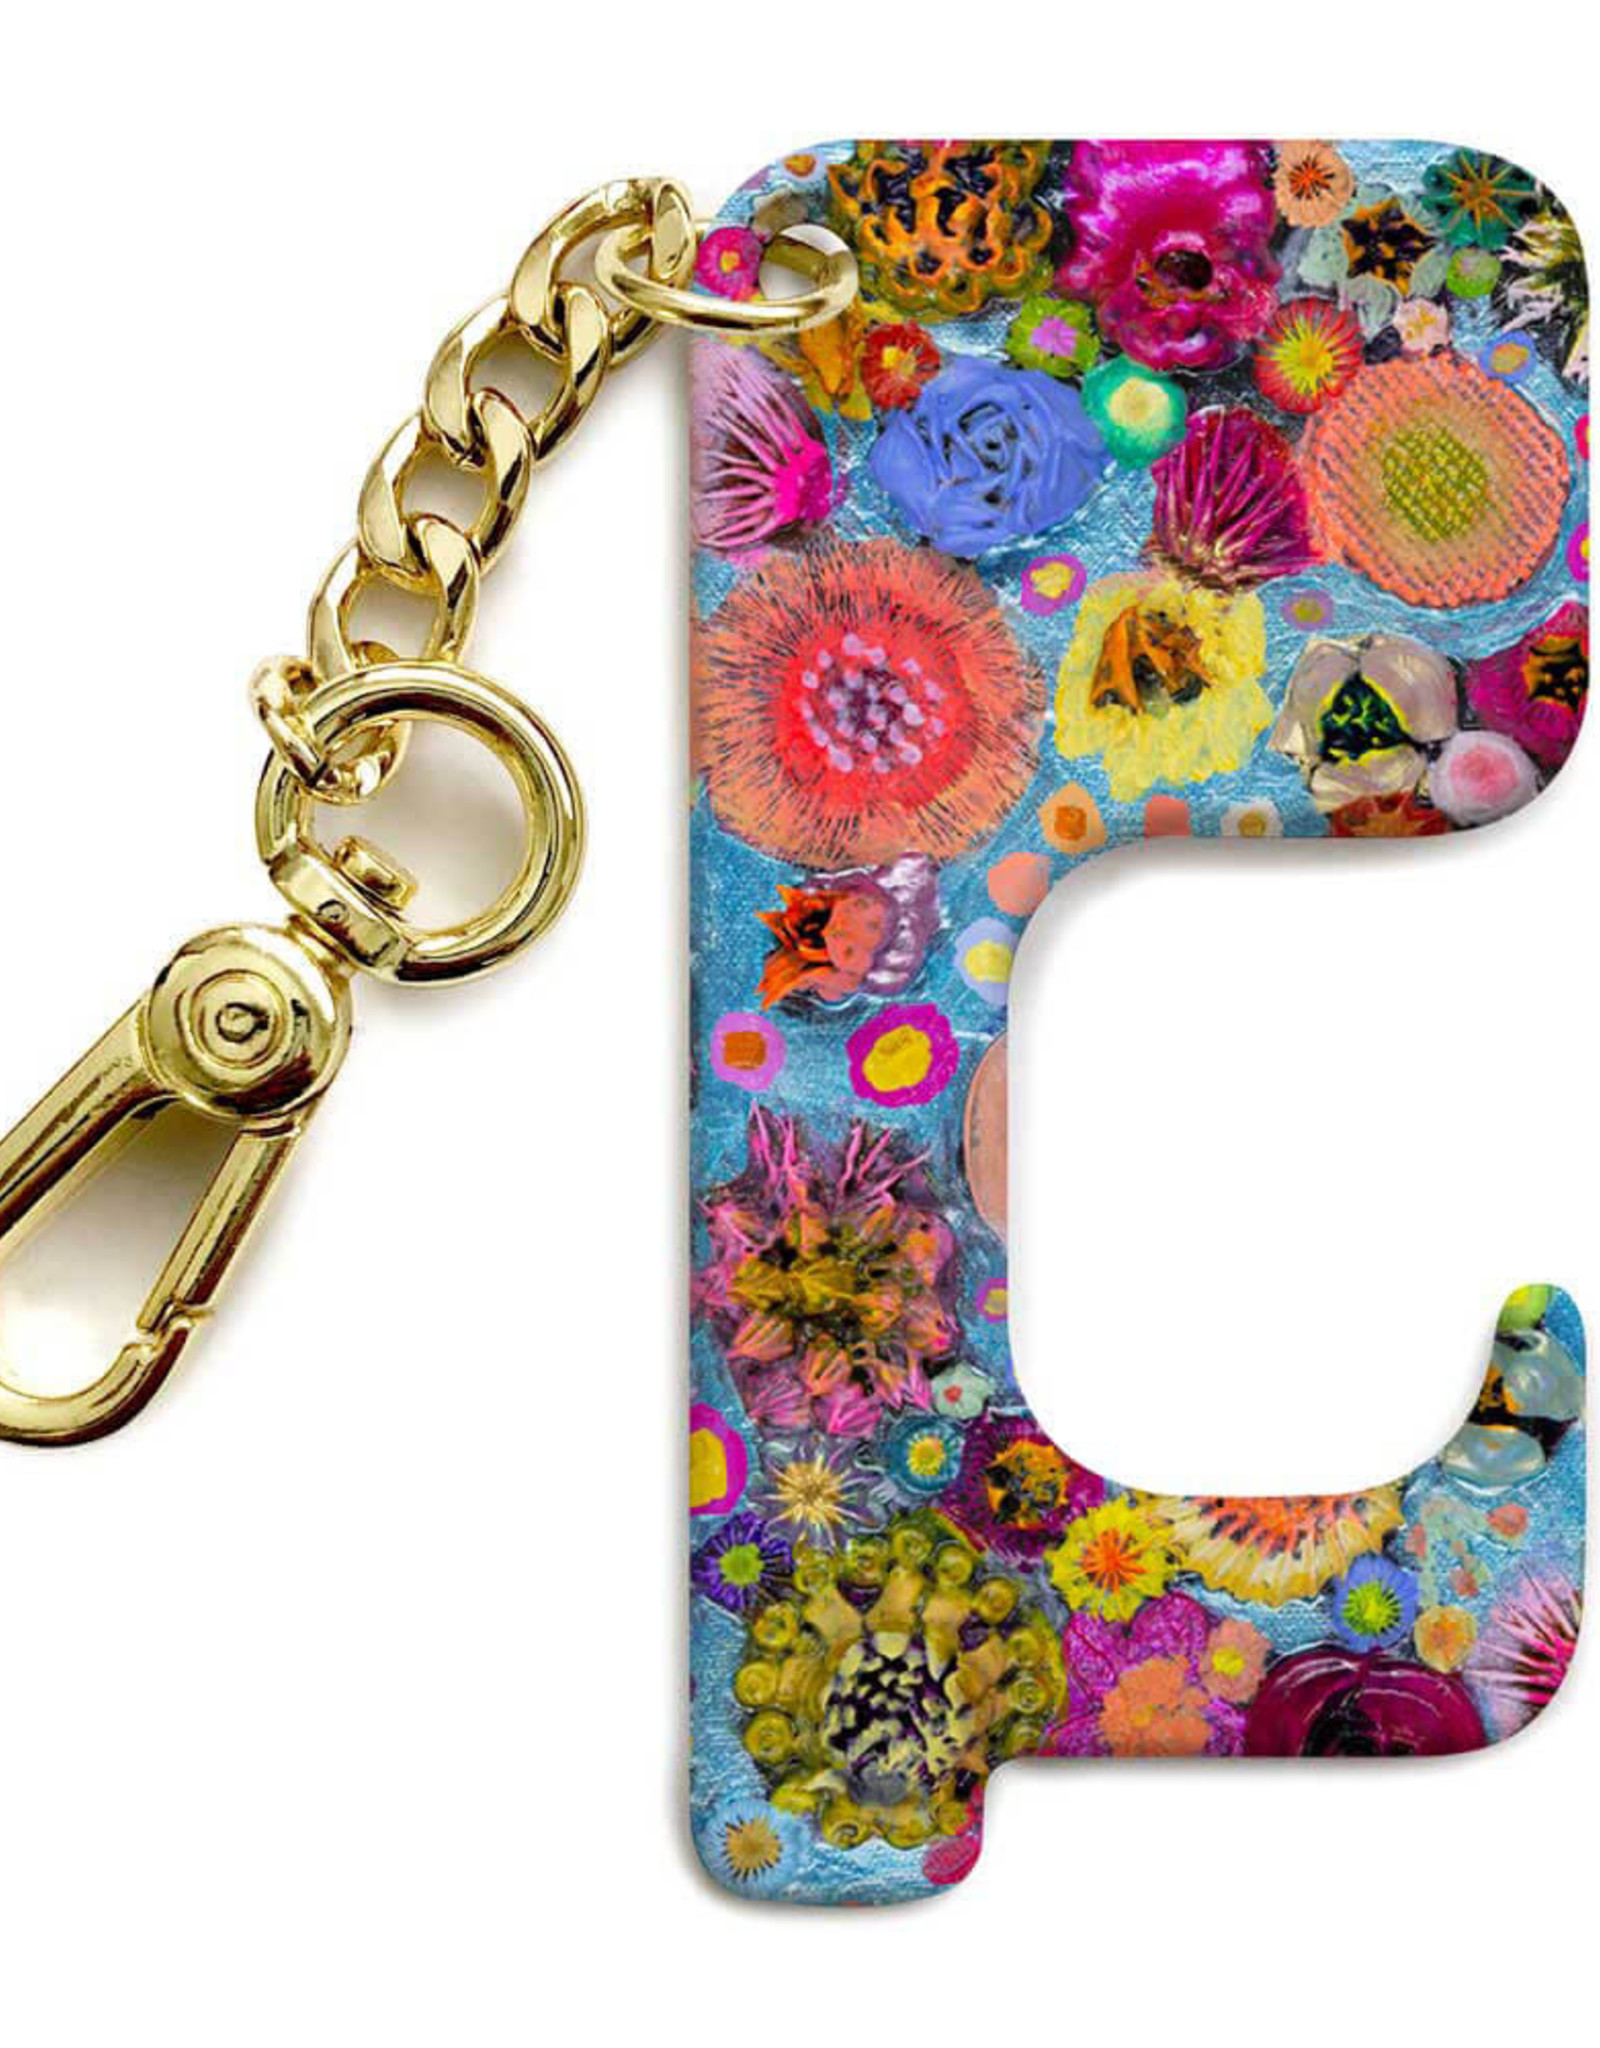 Greenbox Art Hands-Free Door Opener Key Chain